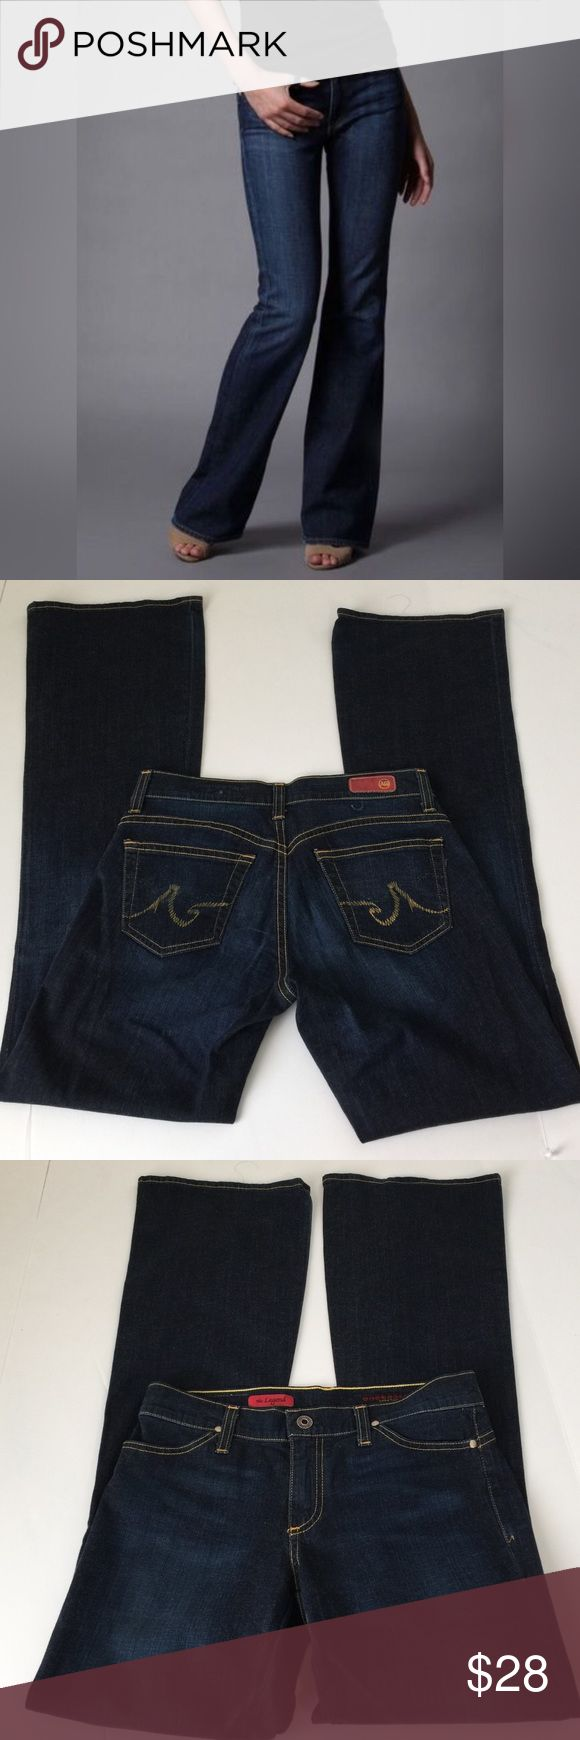 AG Adriano Goldshmied The Legend Flare Jeans, 27 AG Adriano Goldshmied The Legend Flare Jeans in size 27. Flat lay measure of the waist is 15. Rise is 8, inseam is 33, and leg opening is 10. Made from 95% cotton and 5% polyurethane.  Small area of distress under the red AG patch as seen in picture 2, but otherwise in very good condition. Please ask if you have any questions. AG Adriano Goldschmied Jeans Flare & Wide Leg